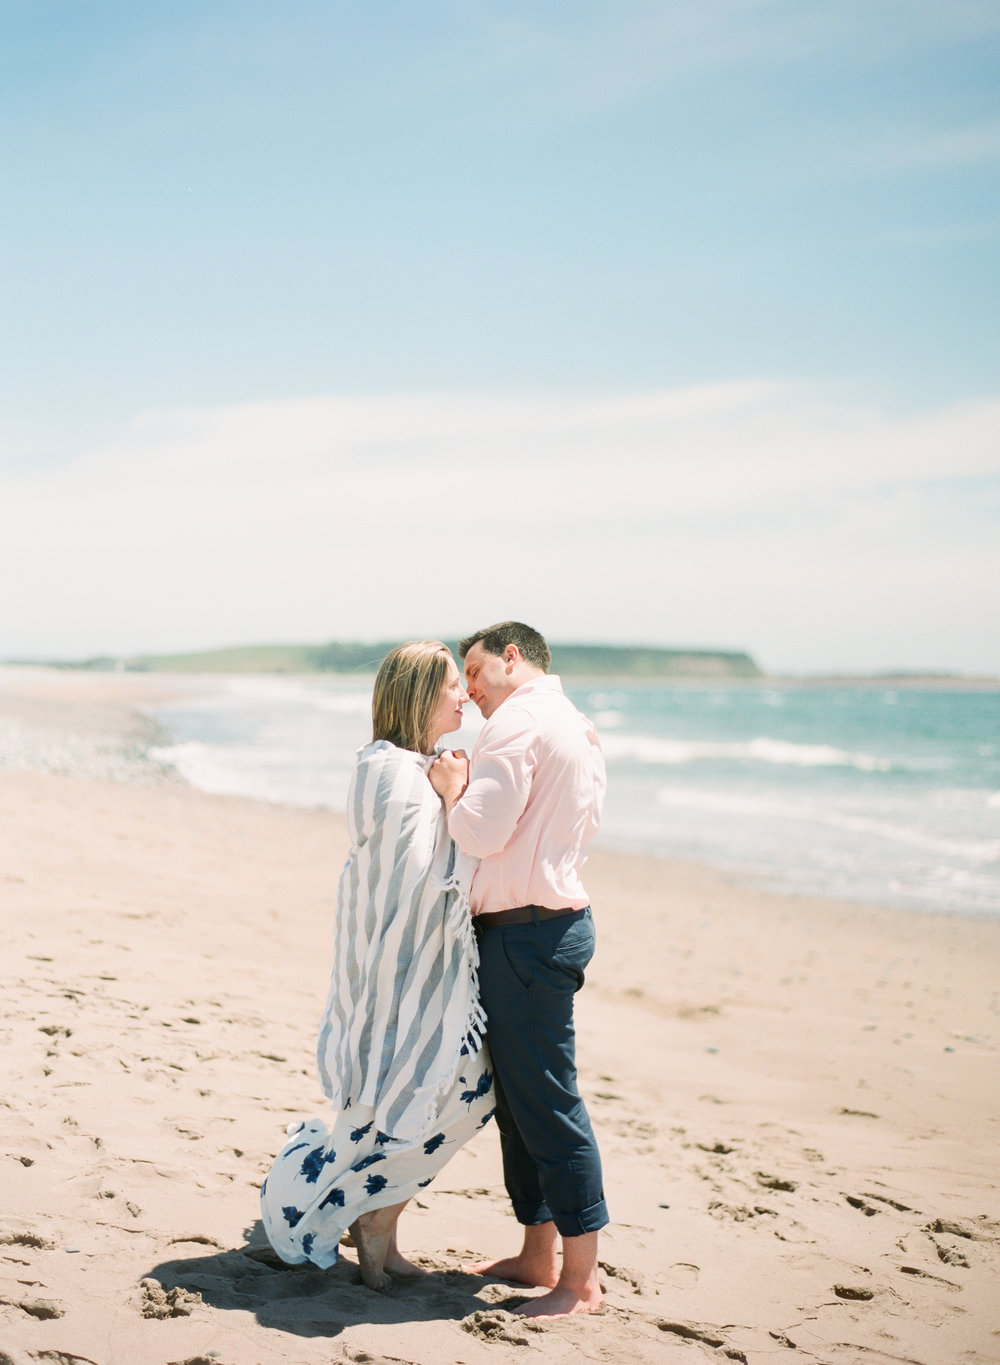 Jacqueline Anne Photography-Melissa and Daniel - Contax 645 - Beach Full Sun-12.jpg